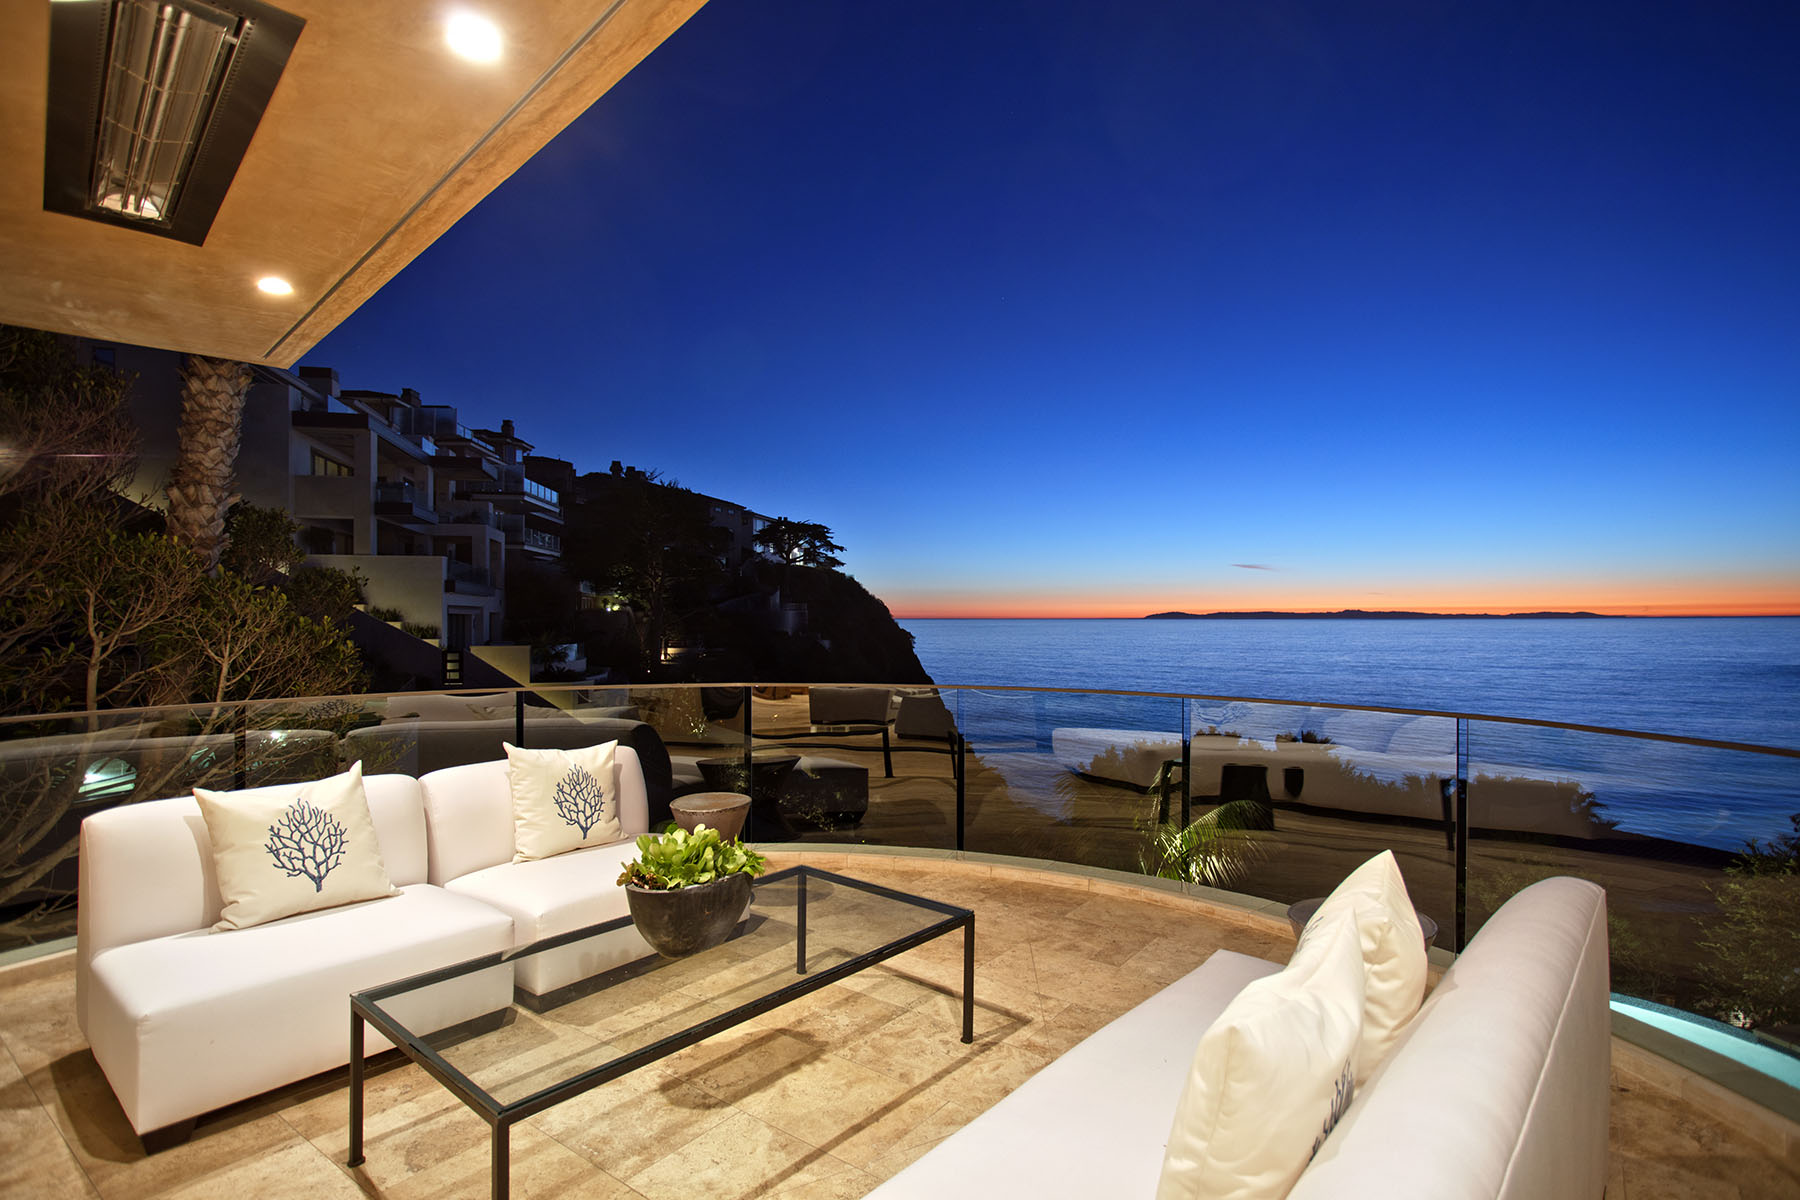 Single Family Home for Sale at 165 Emerald Bay Laguna Beach, California, 92651 United States